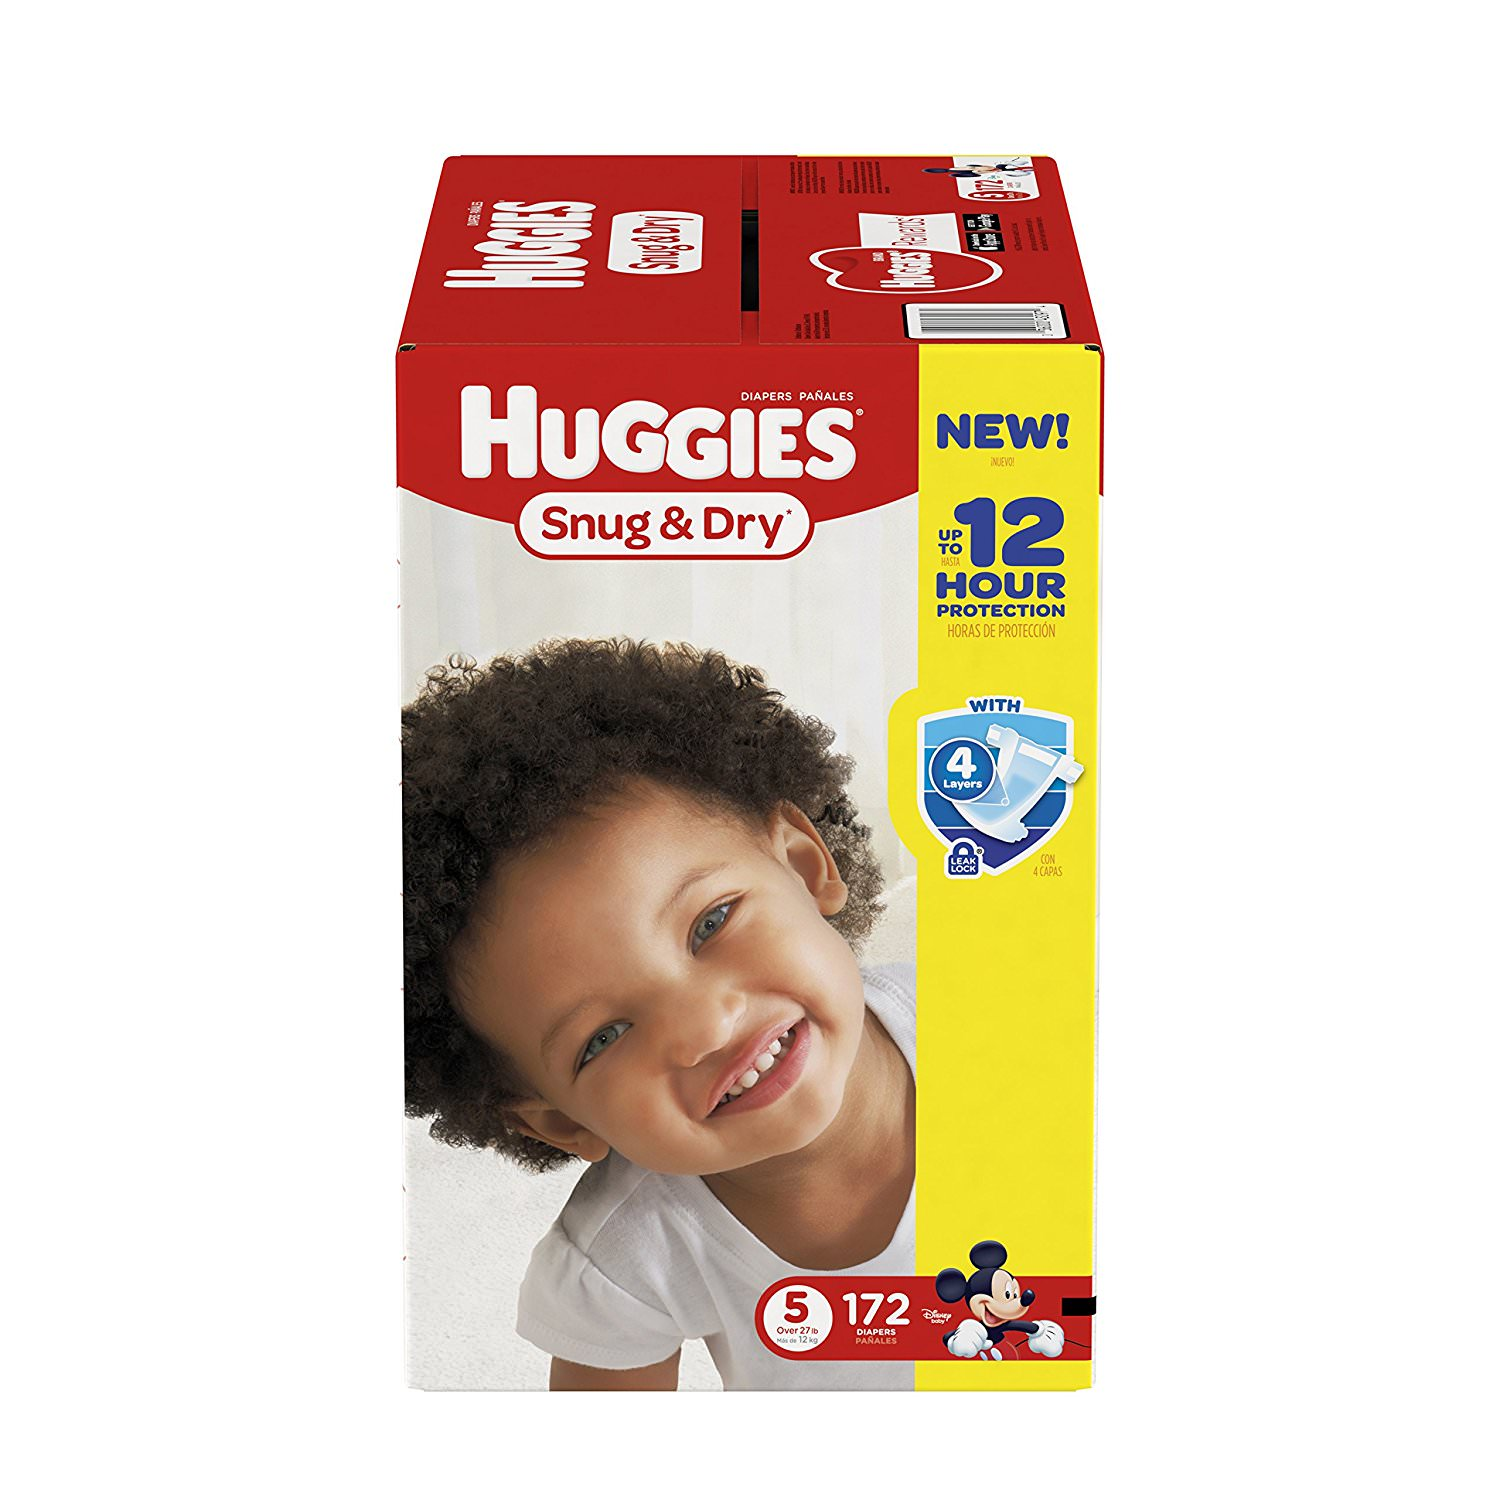 HUGGIES Snug & Dry Diapers, Size 5, for Over 27 lbs., One Month Supply (172 Count) of Baby Diapers, Packaging May Vary